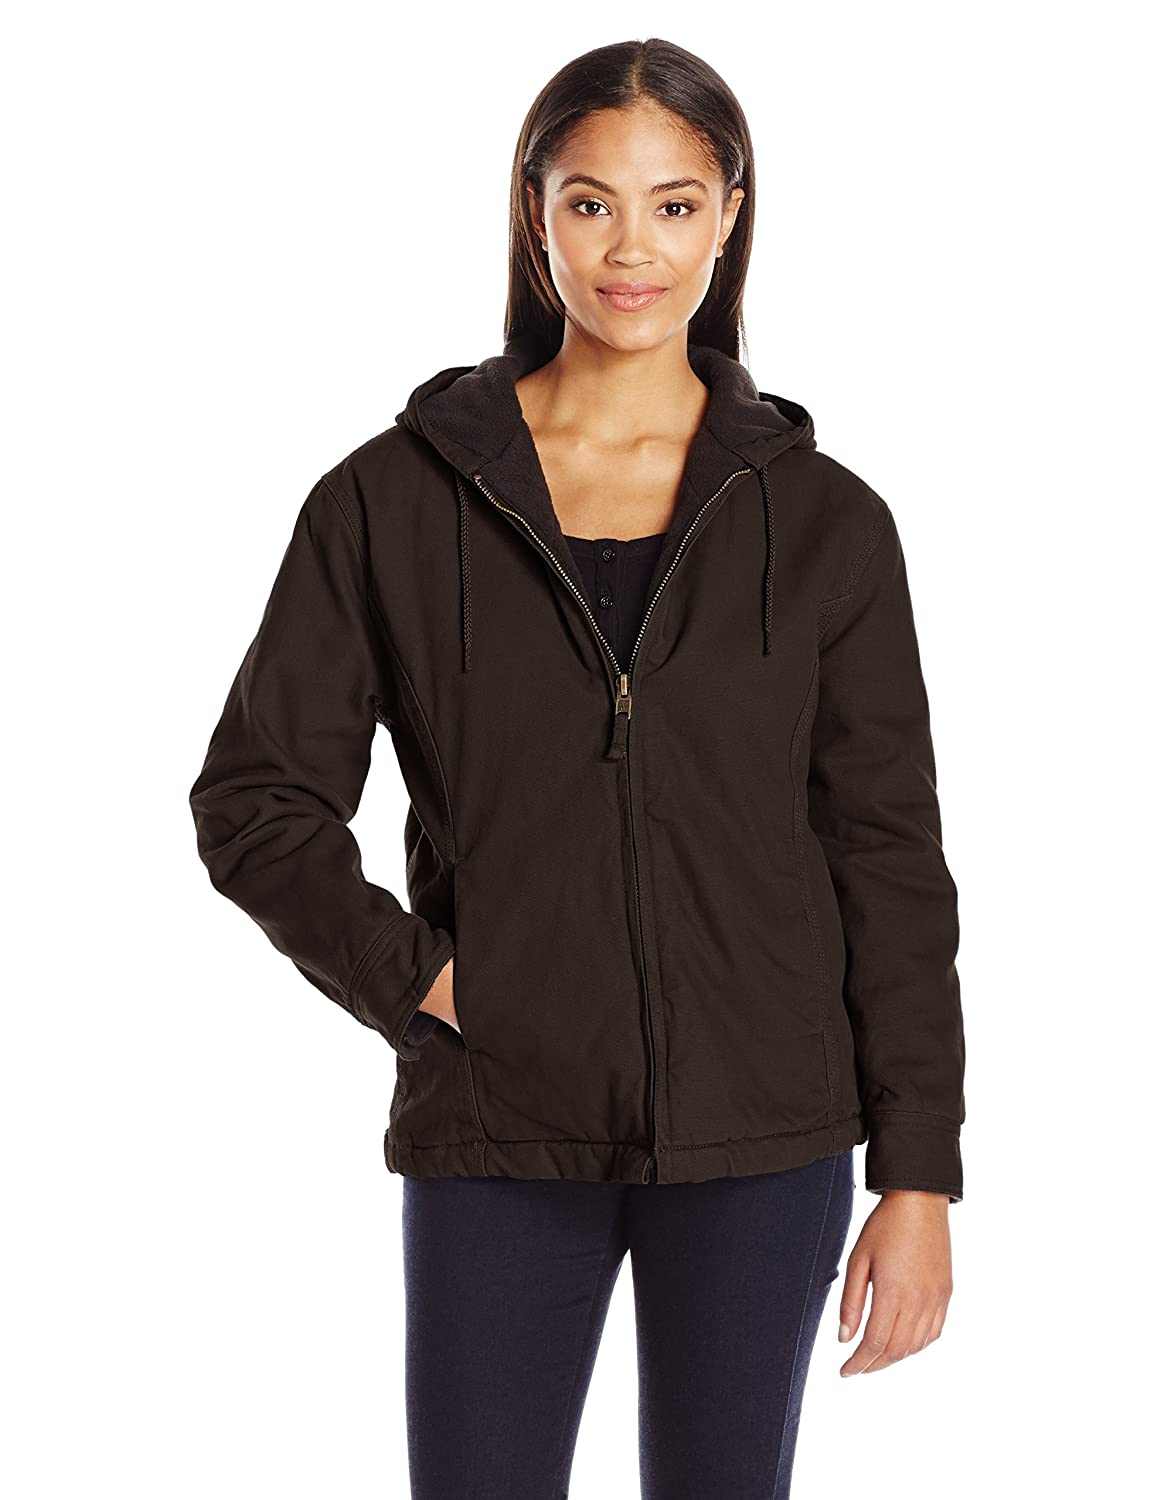 Chocolate Key Apparel Womens Premium Insulated Fleece Lined Hooded Jacket Outerwear